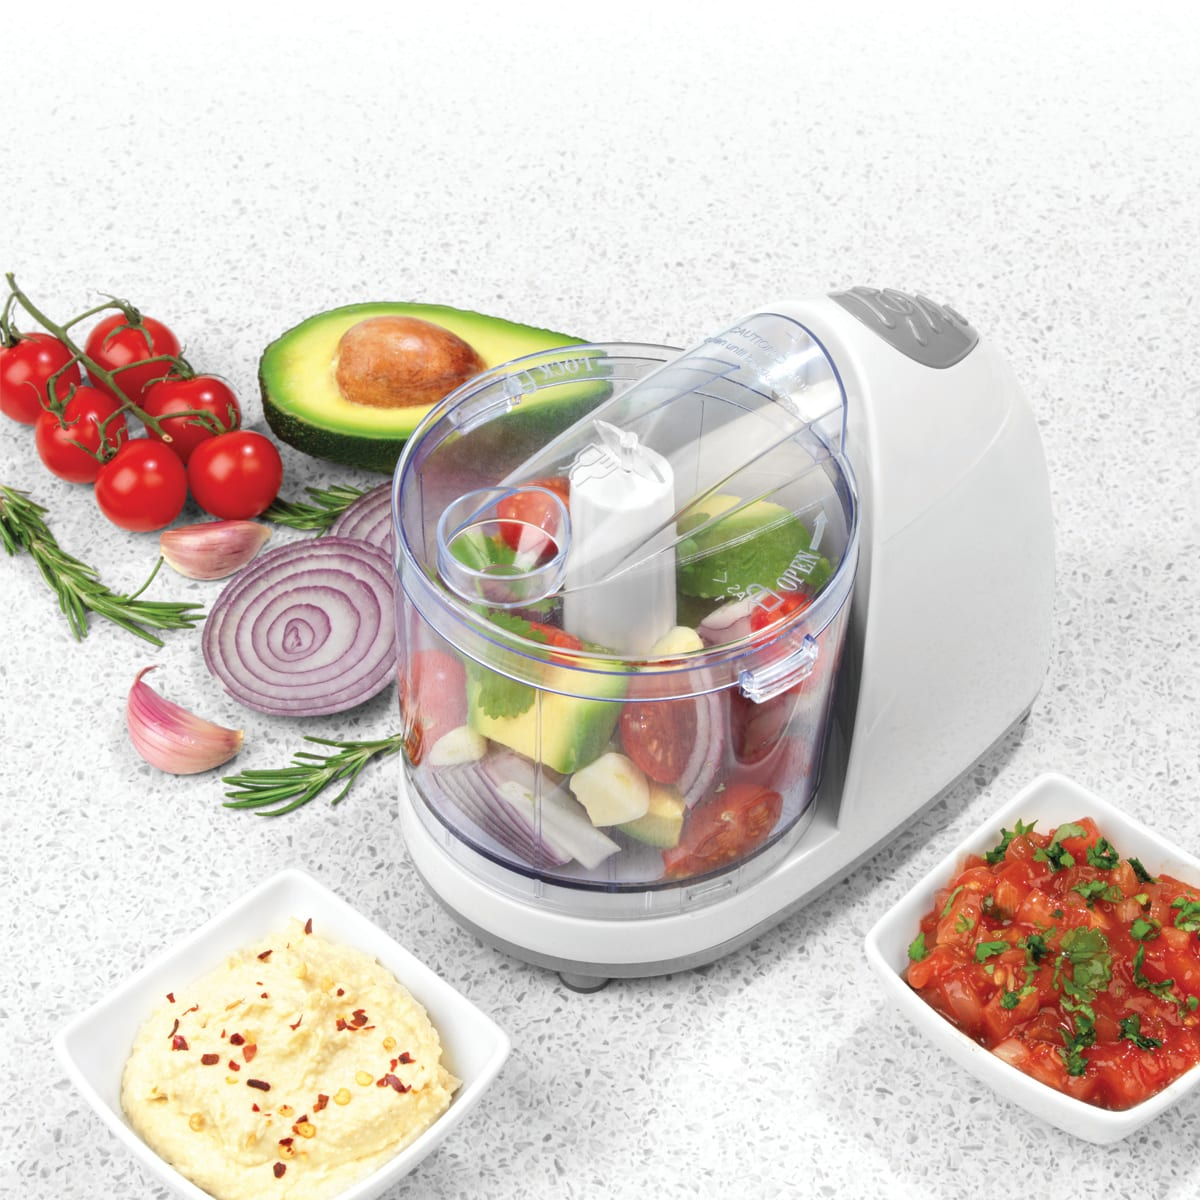 Salter Mini Food Chopper, one touch operation, steel blade cuts meat, vegetables and nuts, 350 ml capacity, 150 W powered blades